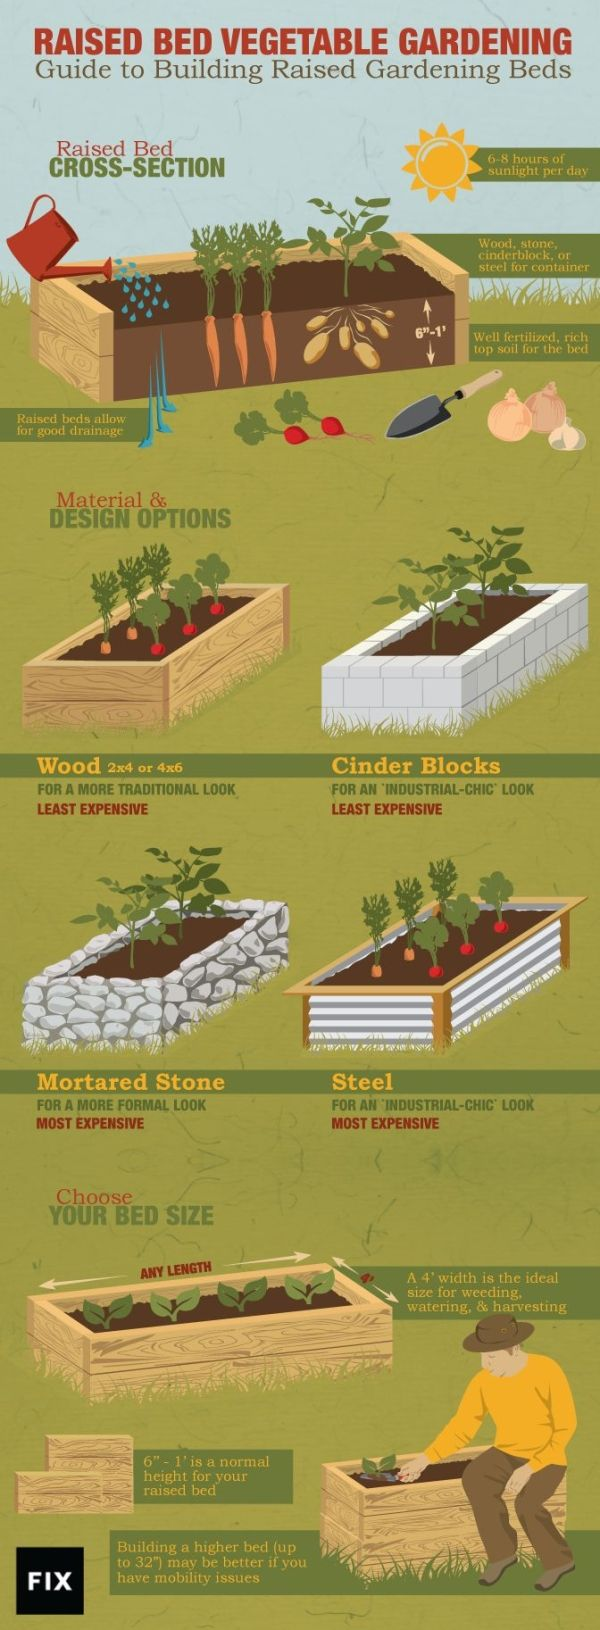 Questions about the recycled plastic raised garden bed 3 x 6 x 11 quot - Learn How To Build Raised Gardening Beds To Save Your Vegetables By Myohodane